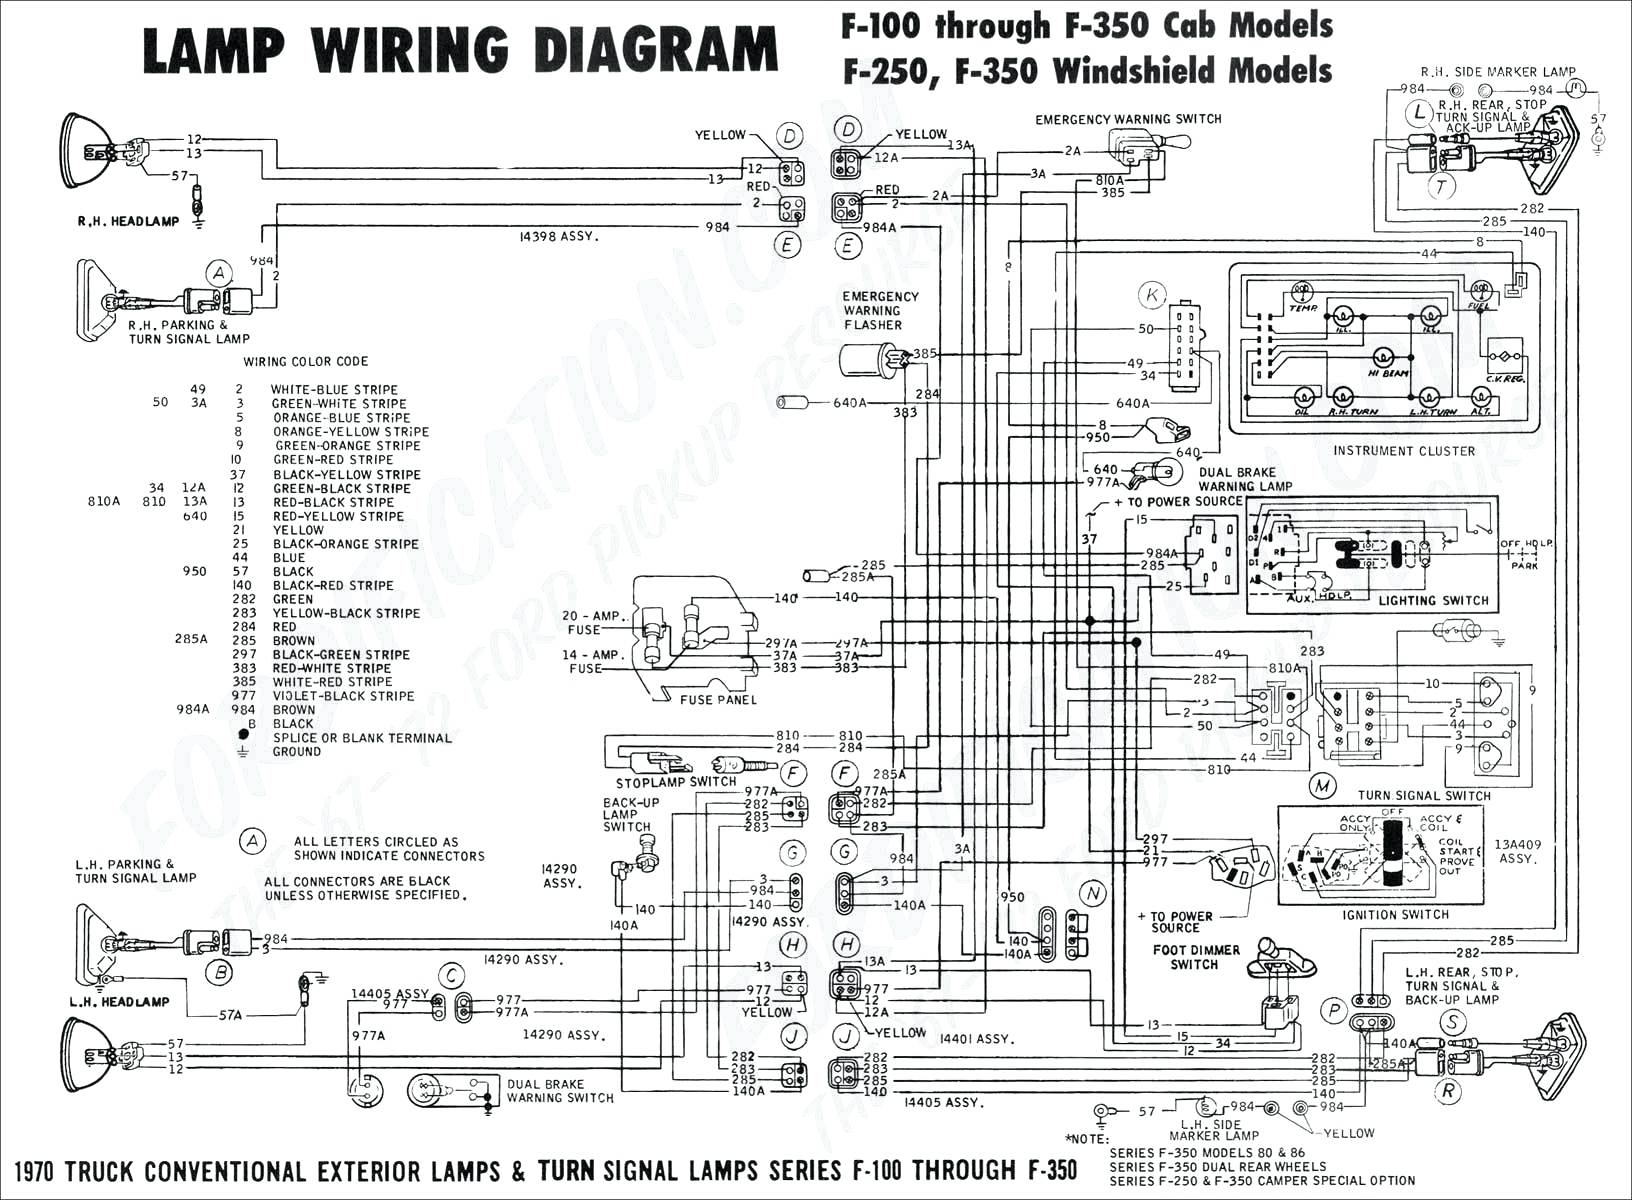 2000 Ford F250 Truck Wiring Diagram Wiring Diagram For 2005 Infiniti Fx35 Begeboy Wiring Diagram Source